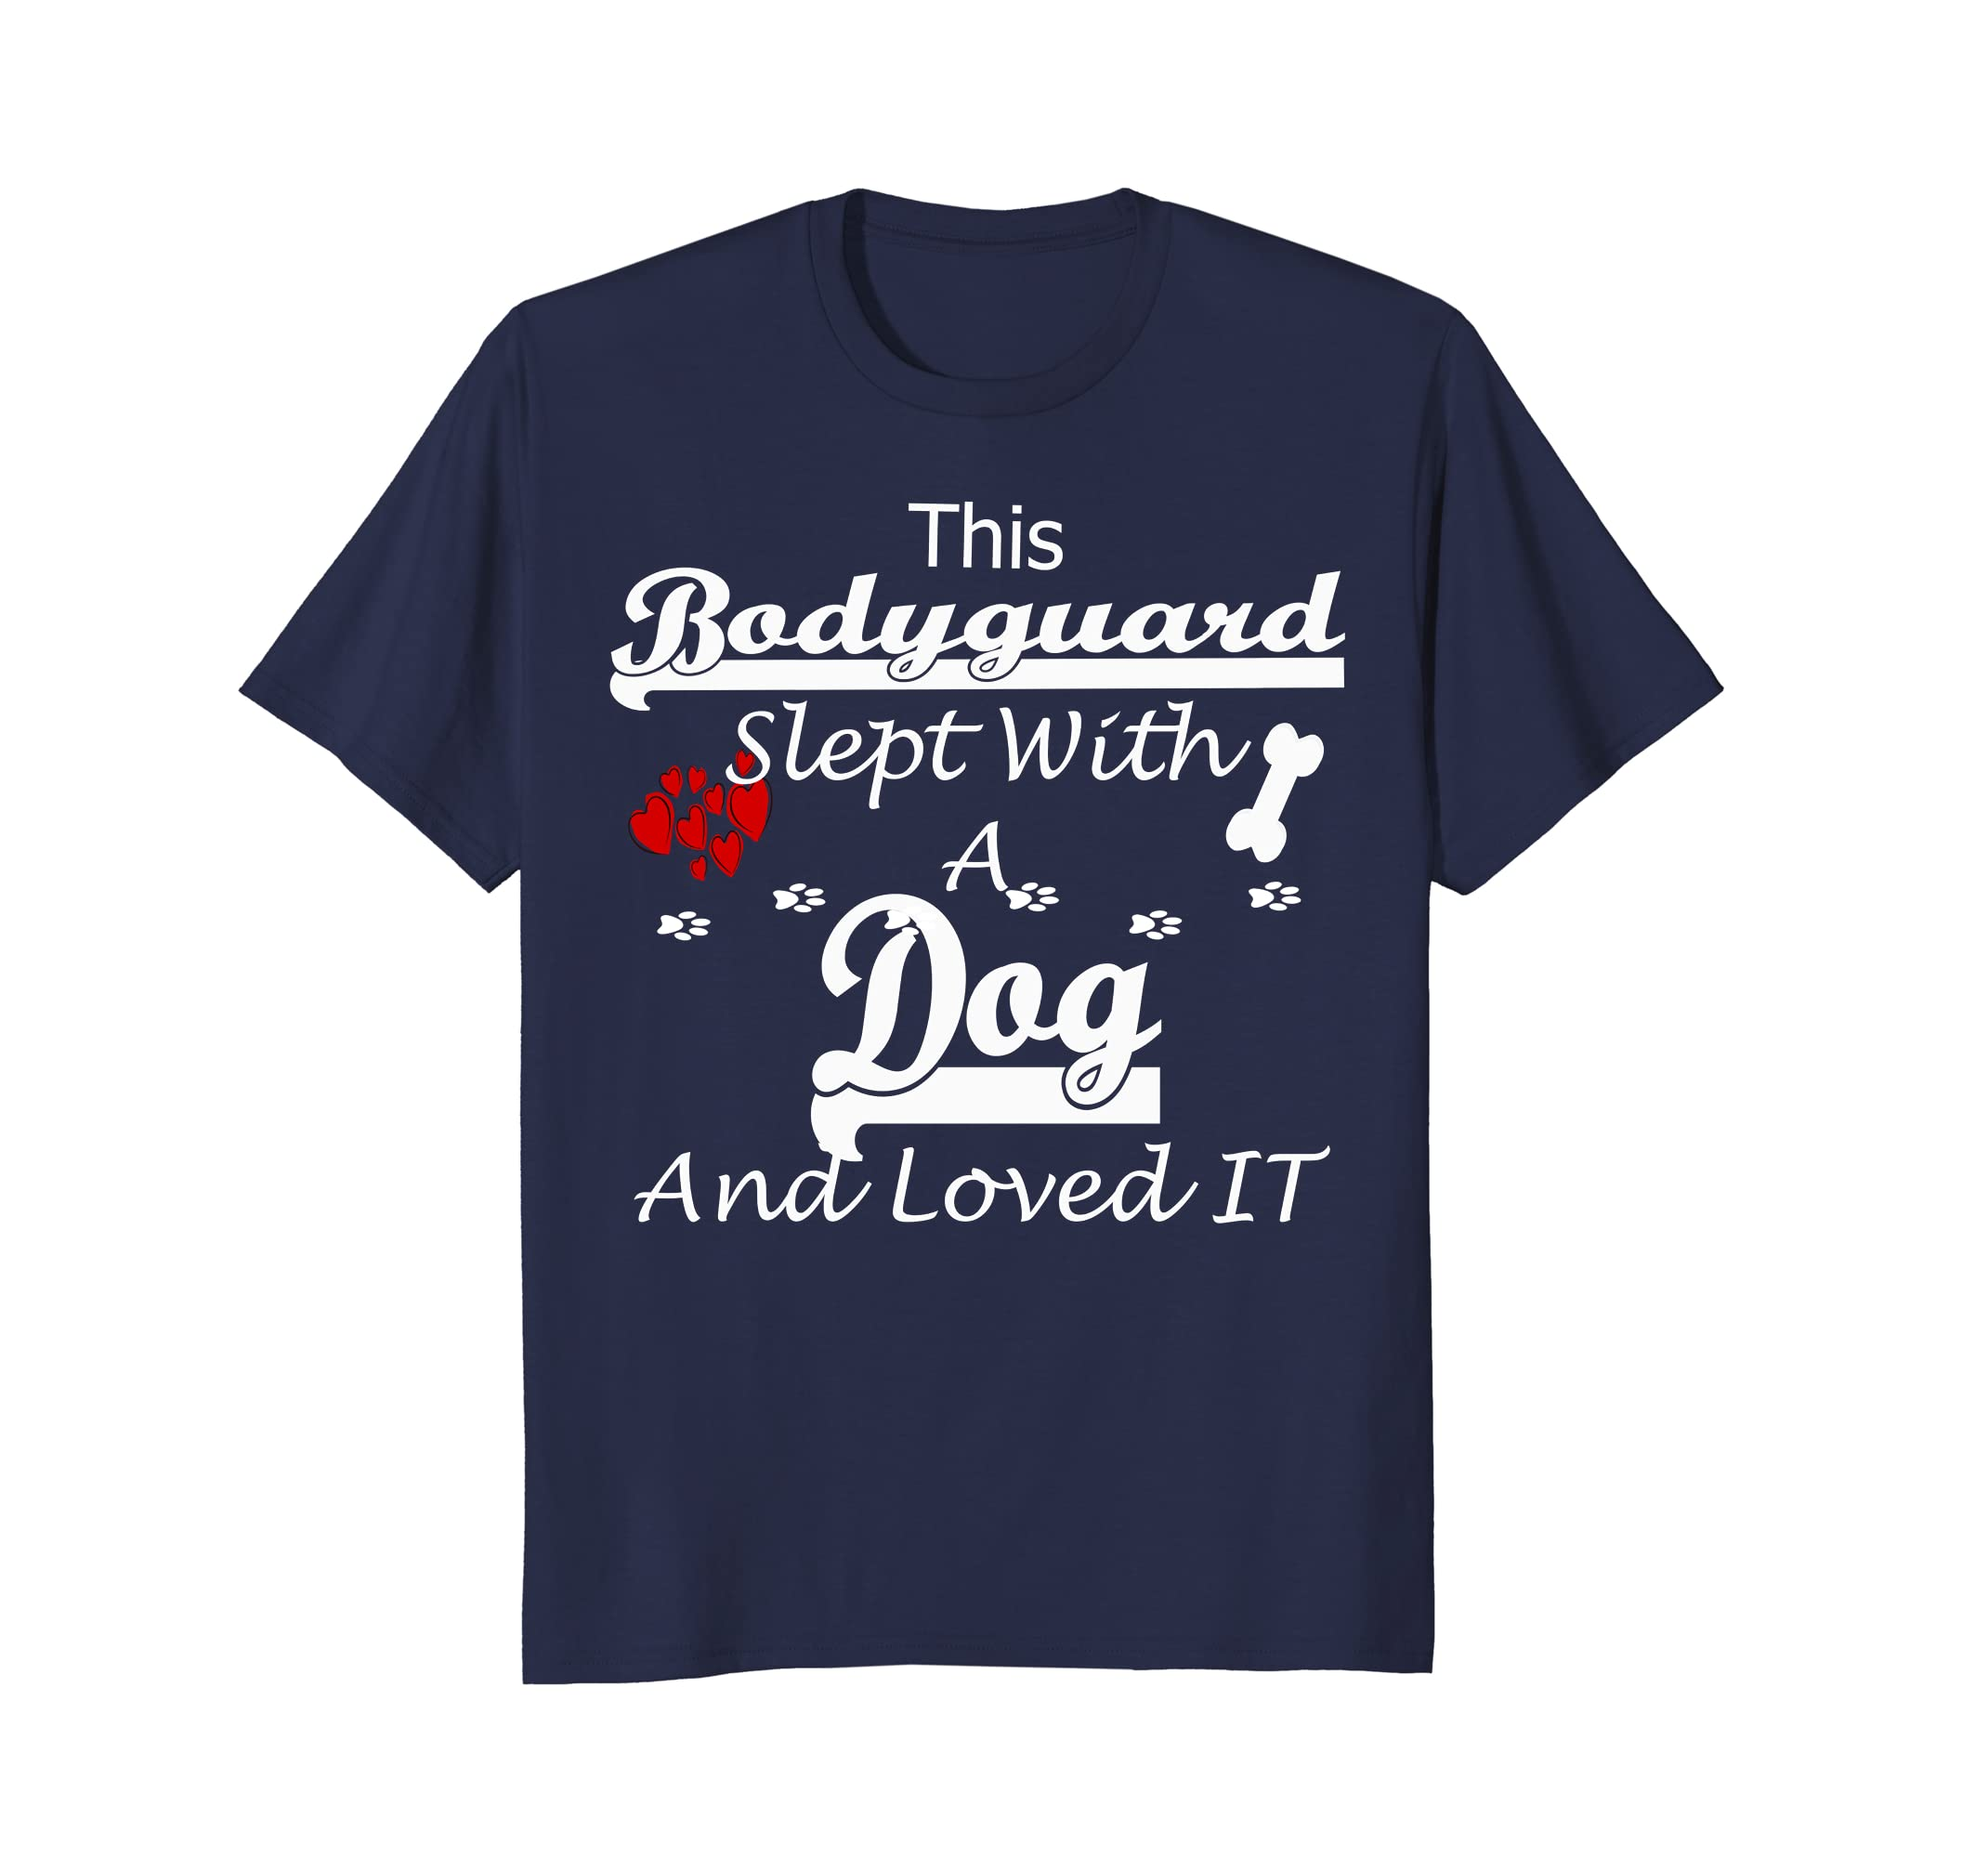 Bodyguard Slept With A Dog and Loved It Funny Tshirt-AZP